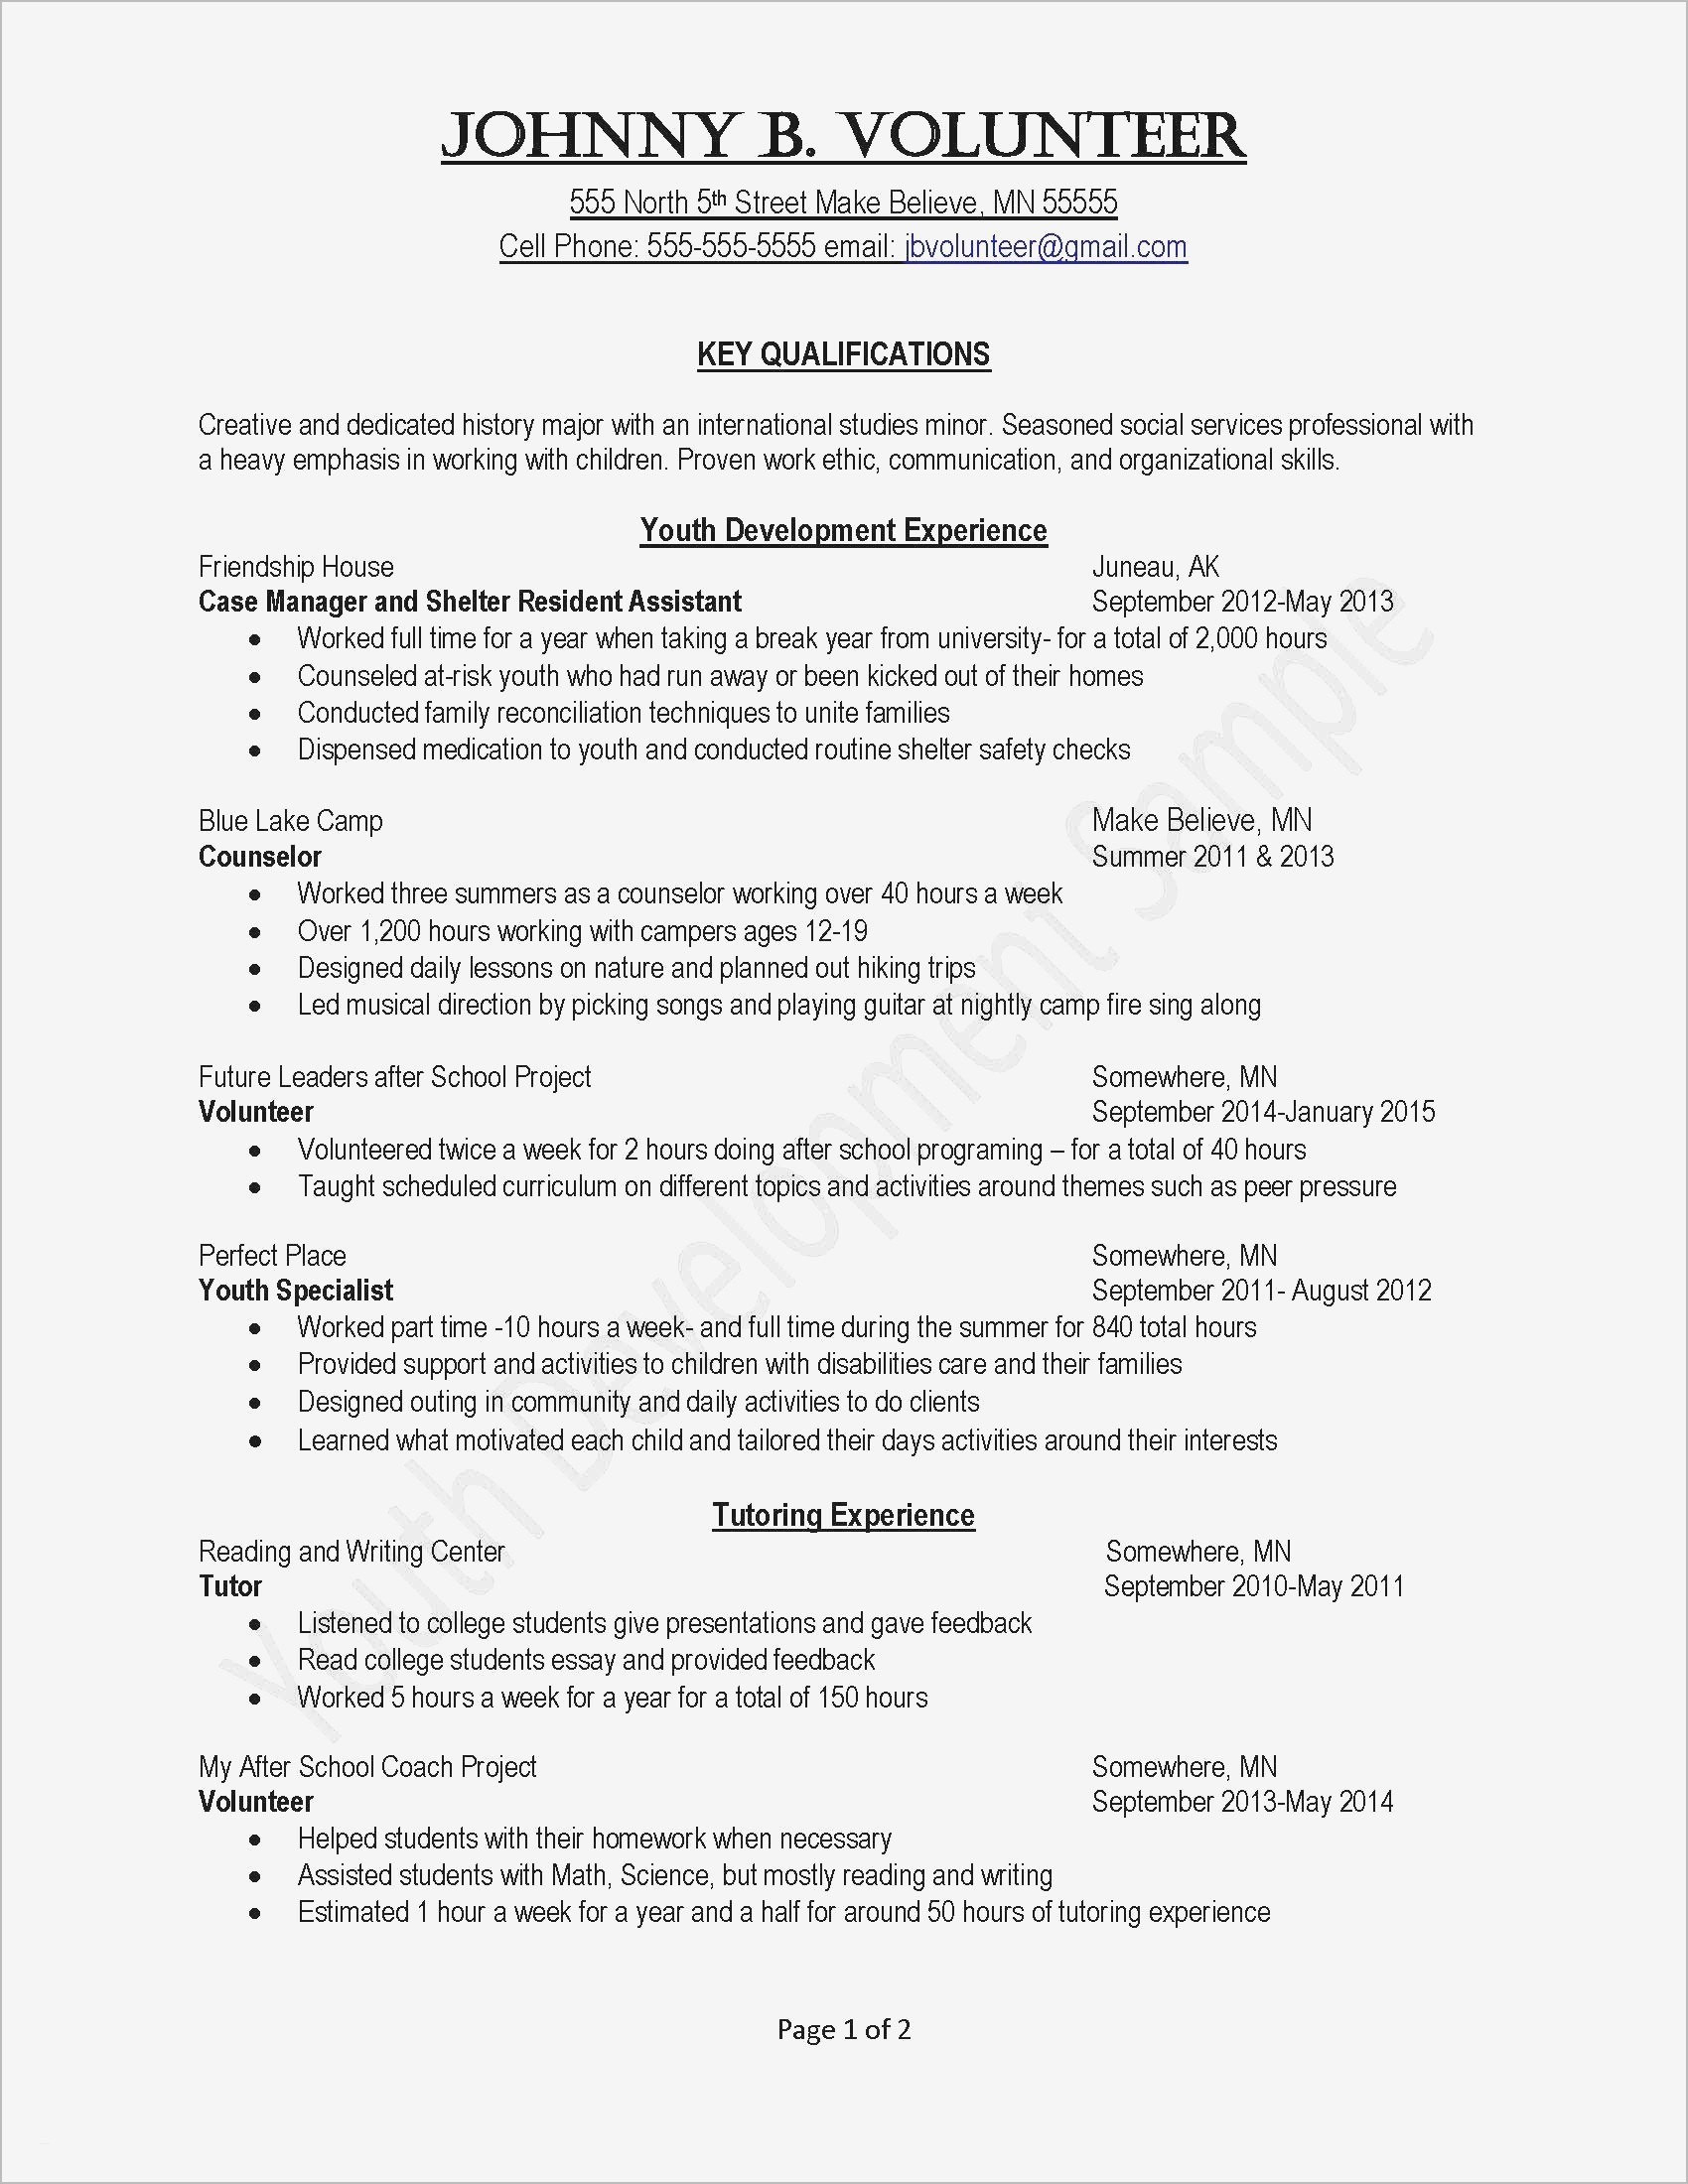 work cover letter template example-How To Make A Resume And Cover Letter Free Creative Resume Cover Letters Examples New Job Fer Letter Template Us Copy Od 15-t